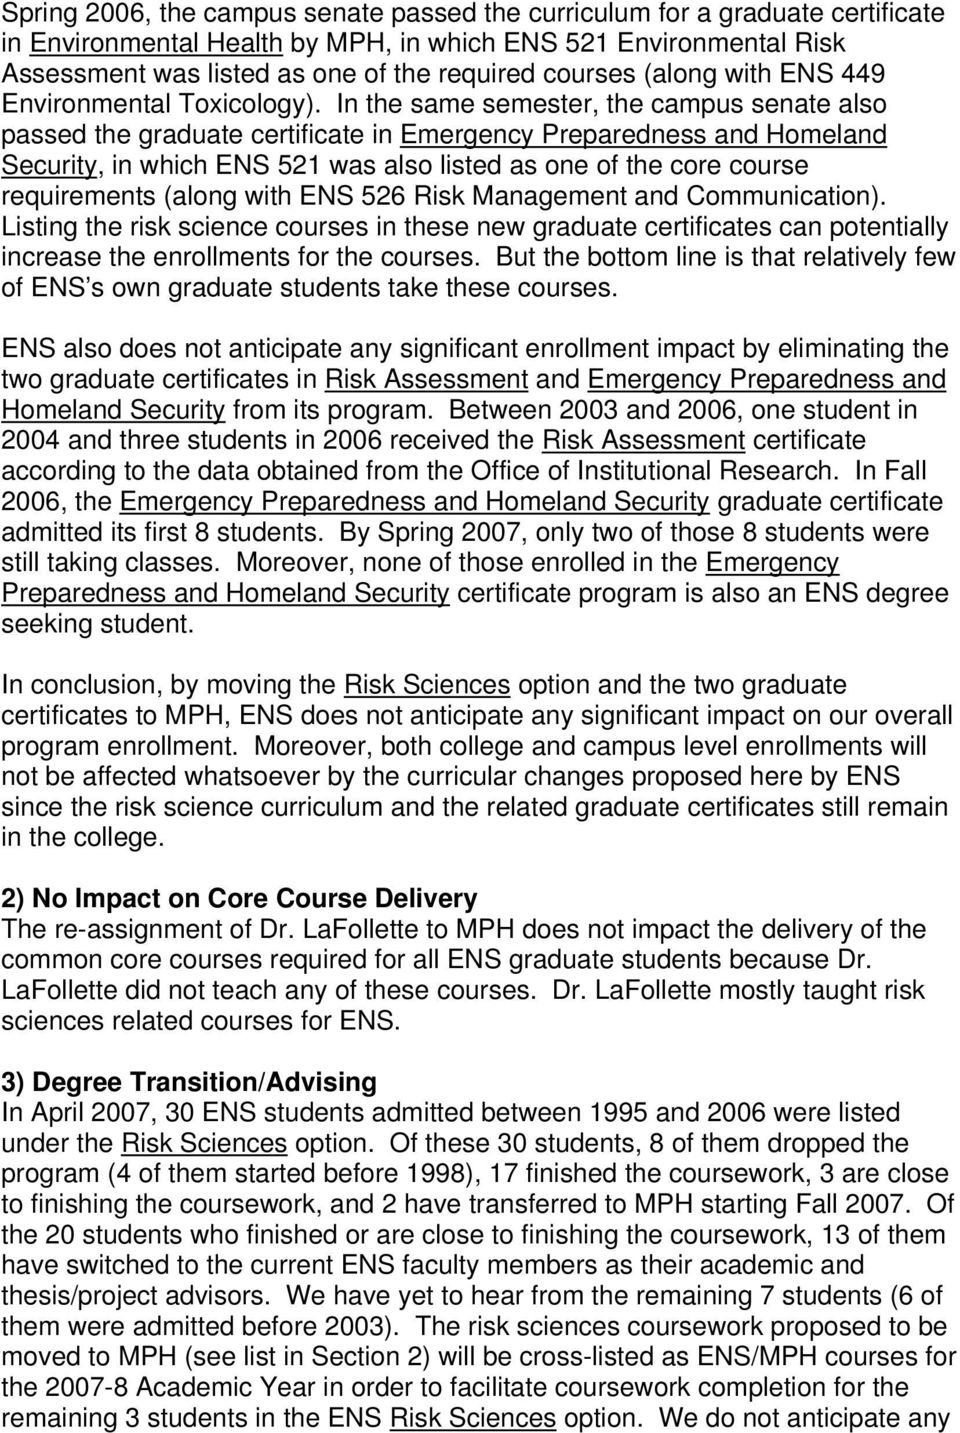 In the same semester, the campus senate also passed the graduate certificate in Emergency Preparedness and Homeland Security, in which ENS 521 was also listed as one of the core course requirements